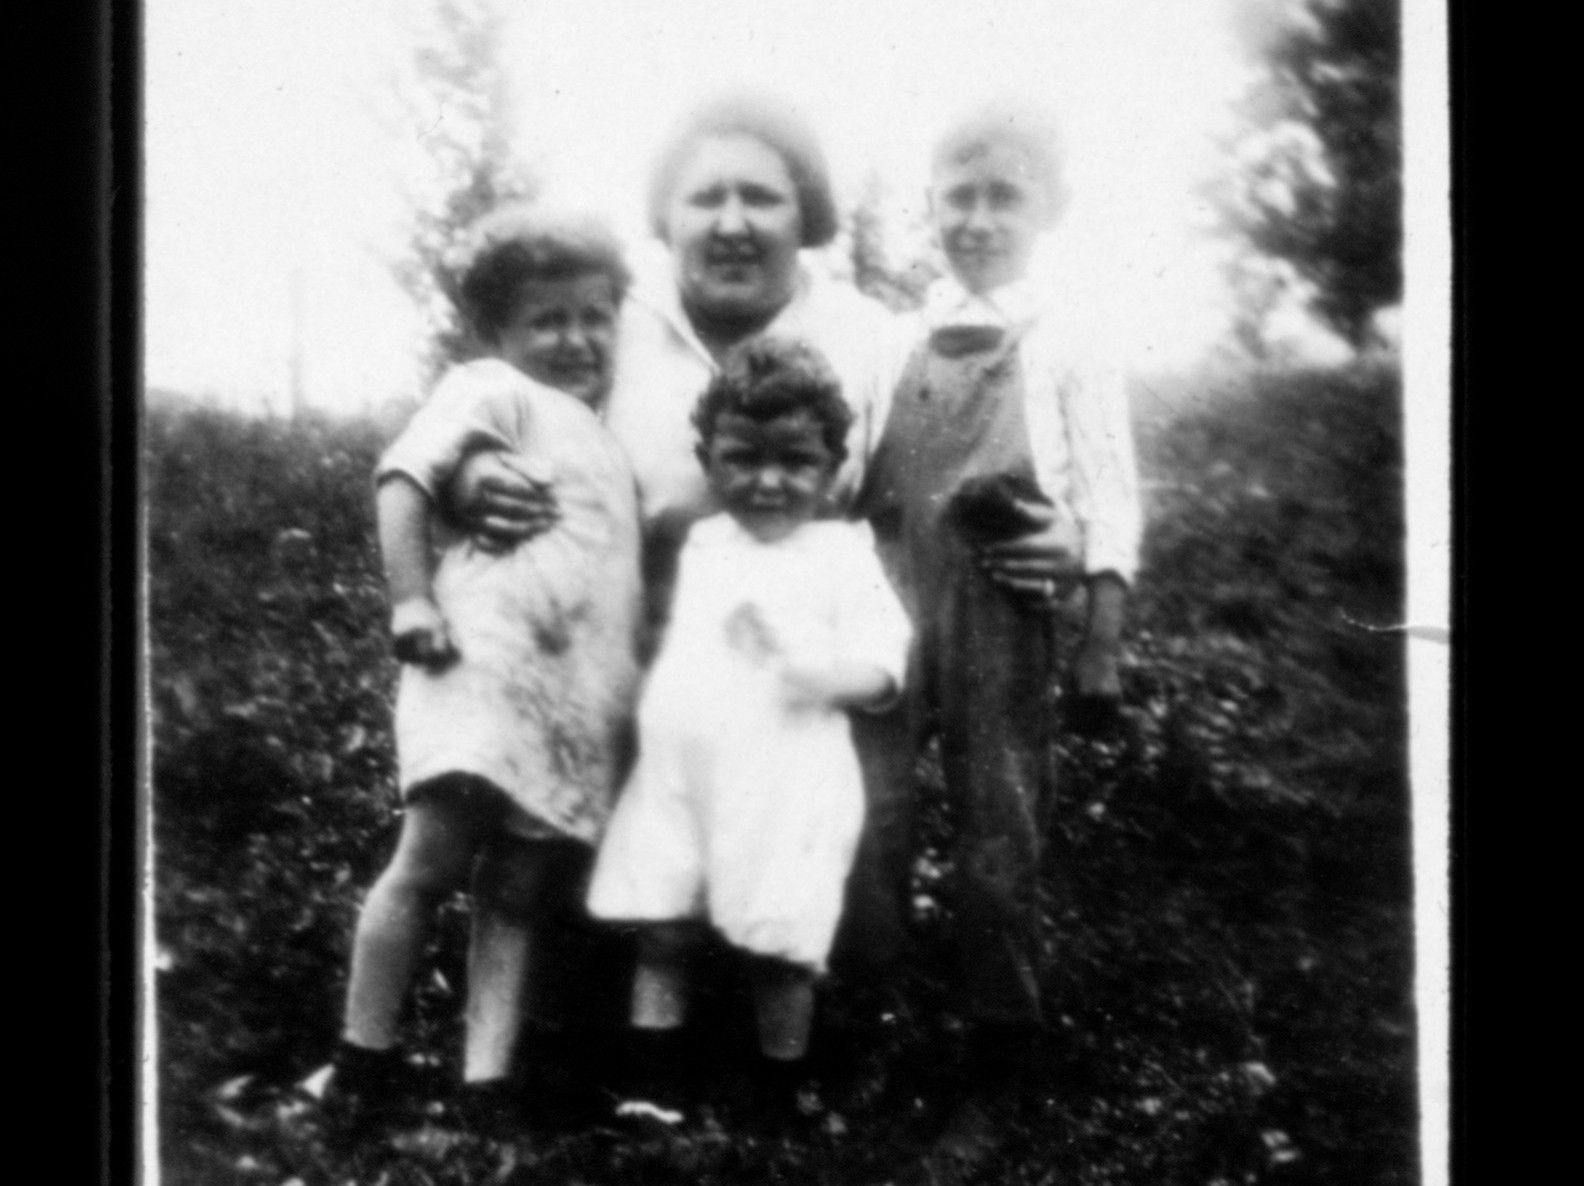 Bessie Rogarshevsky as an adult posing with her children.